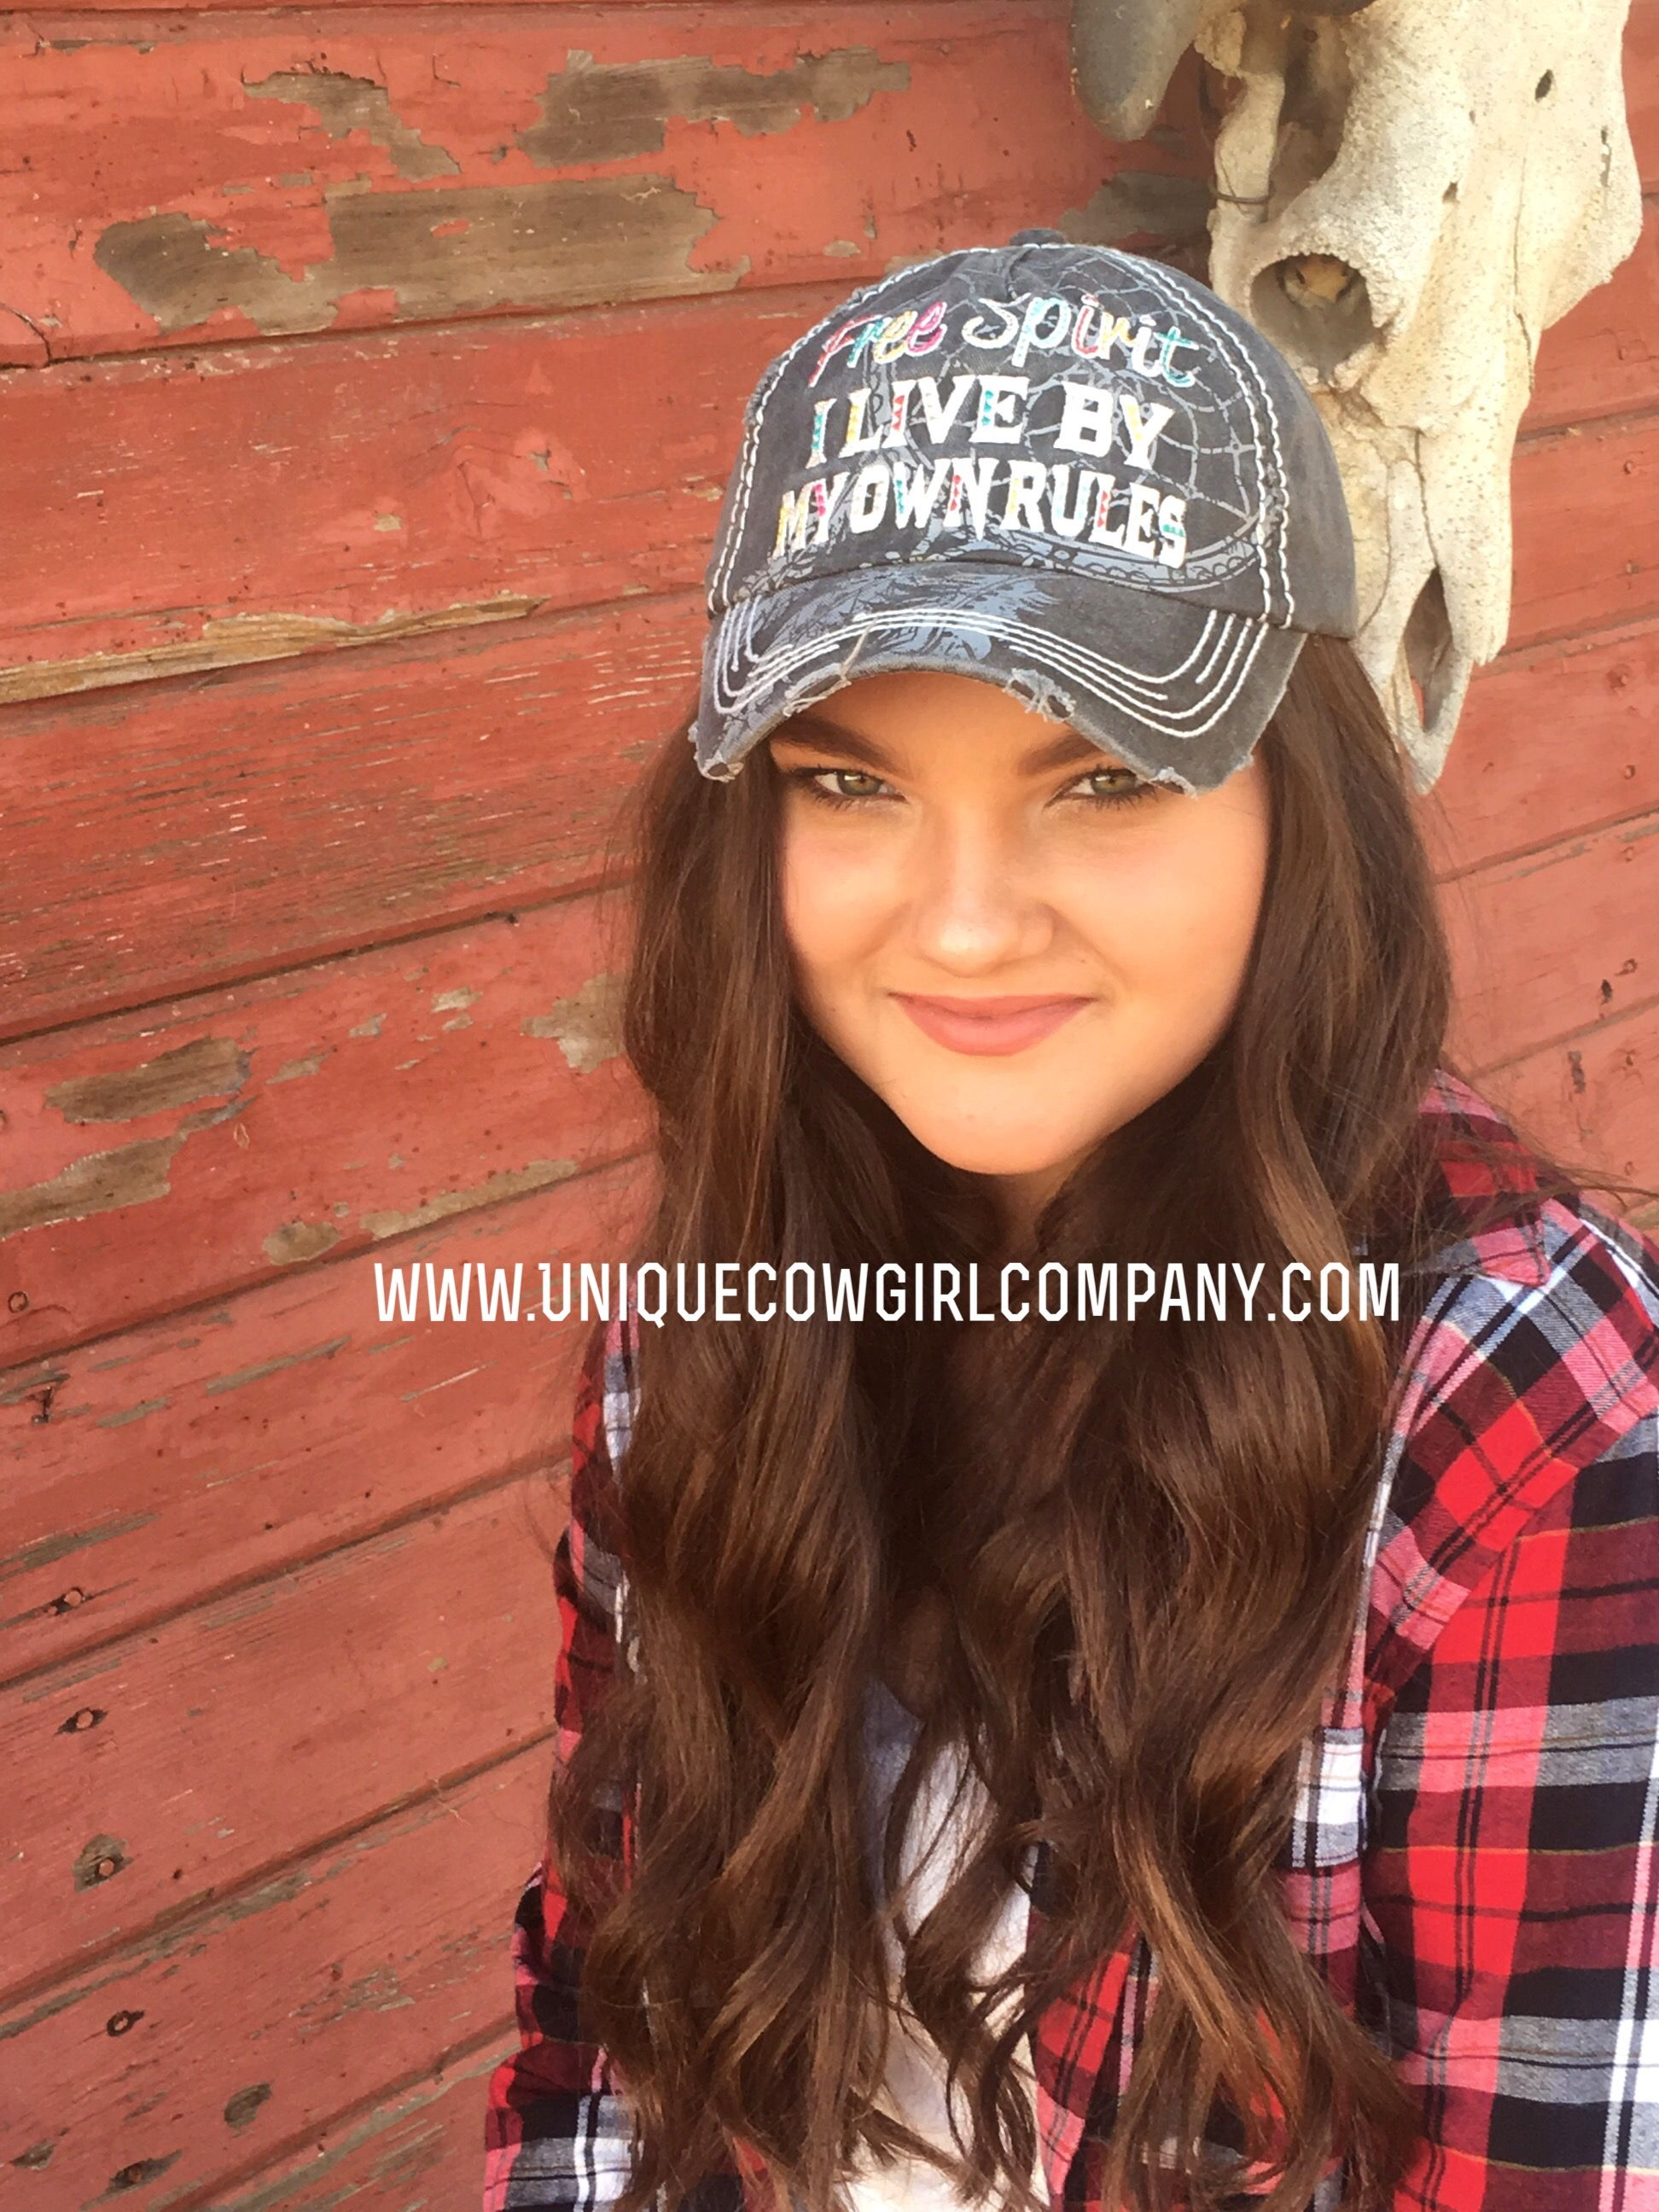 Free Spirit 'I live by my own rules' vintage western style Ball cap with dream catcher background  @ www.UniqueCowgirlCompany.com